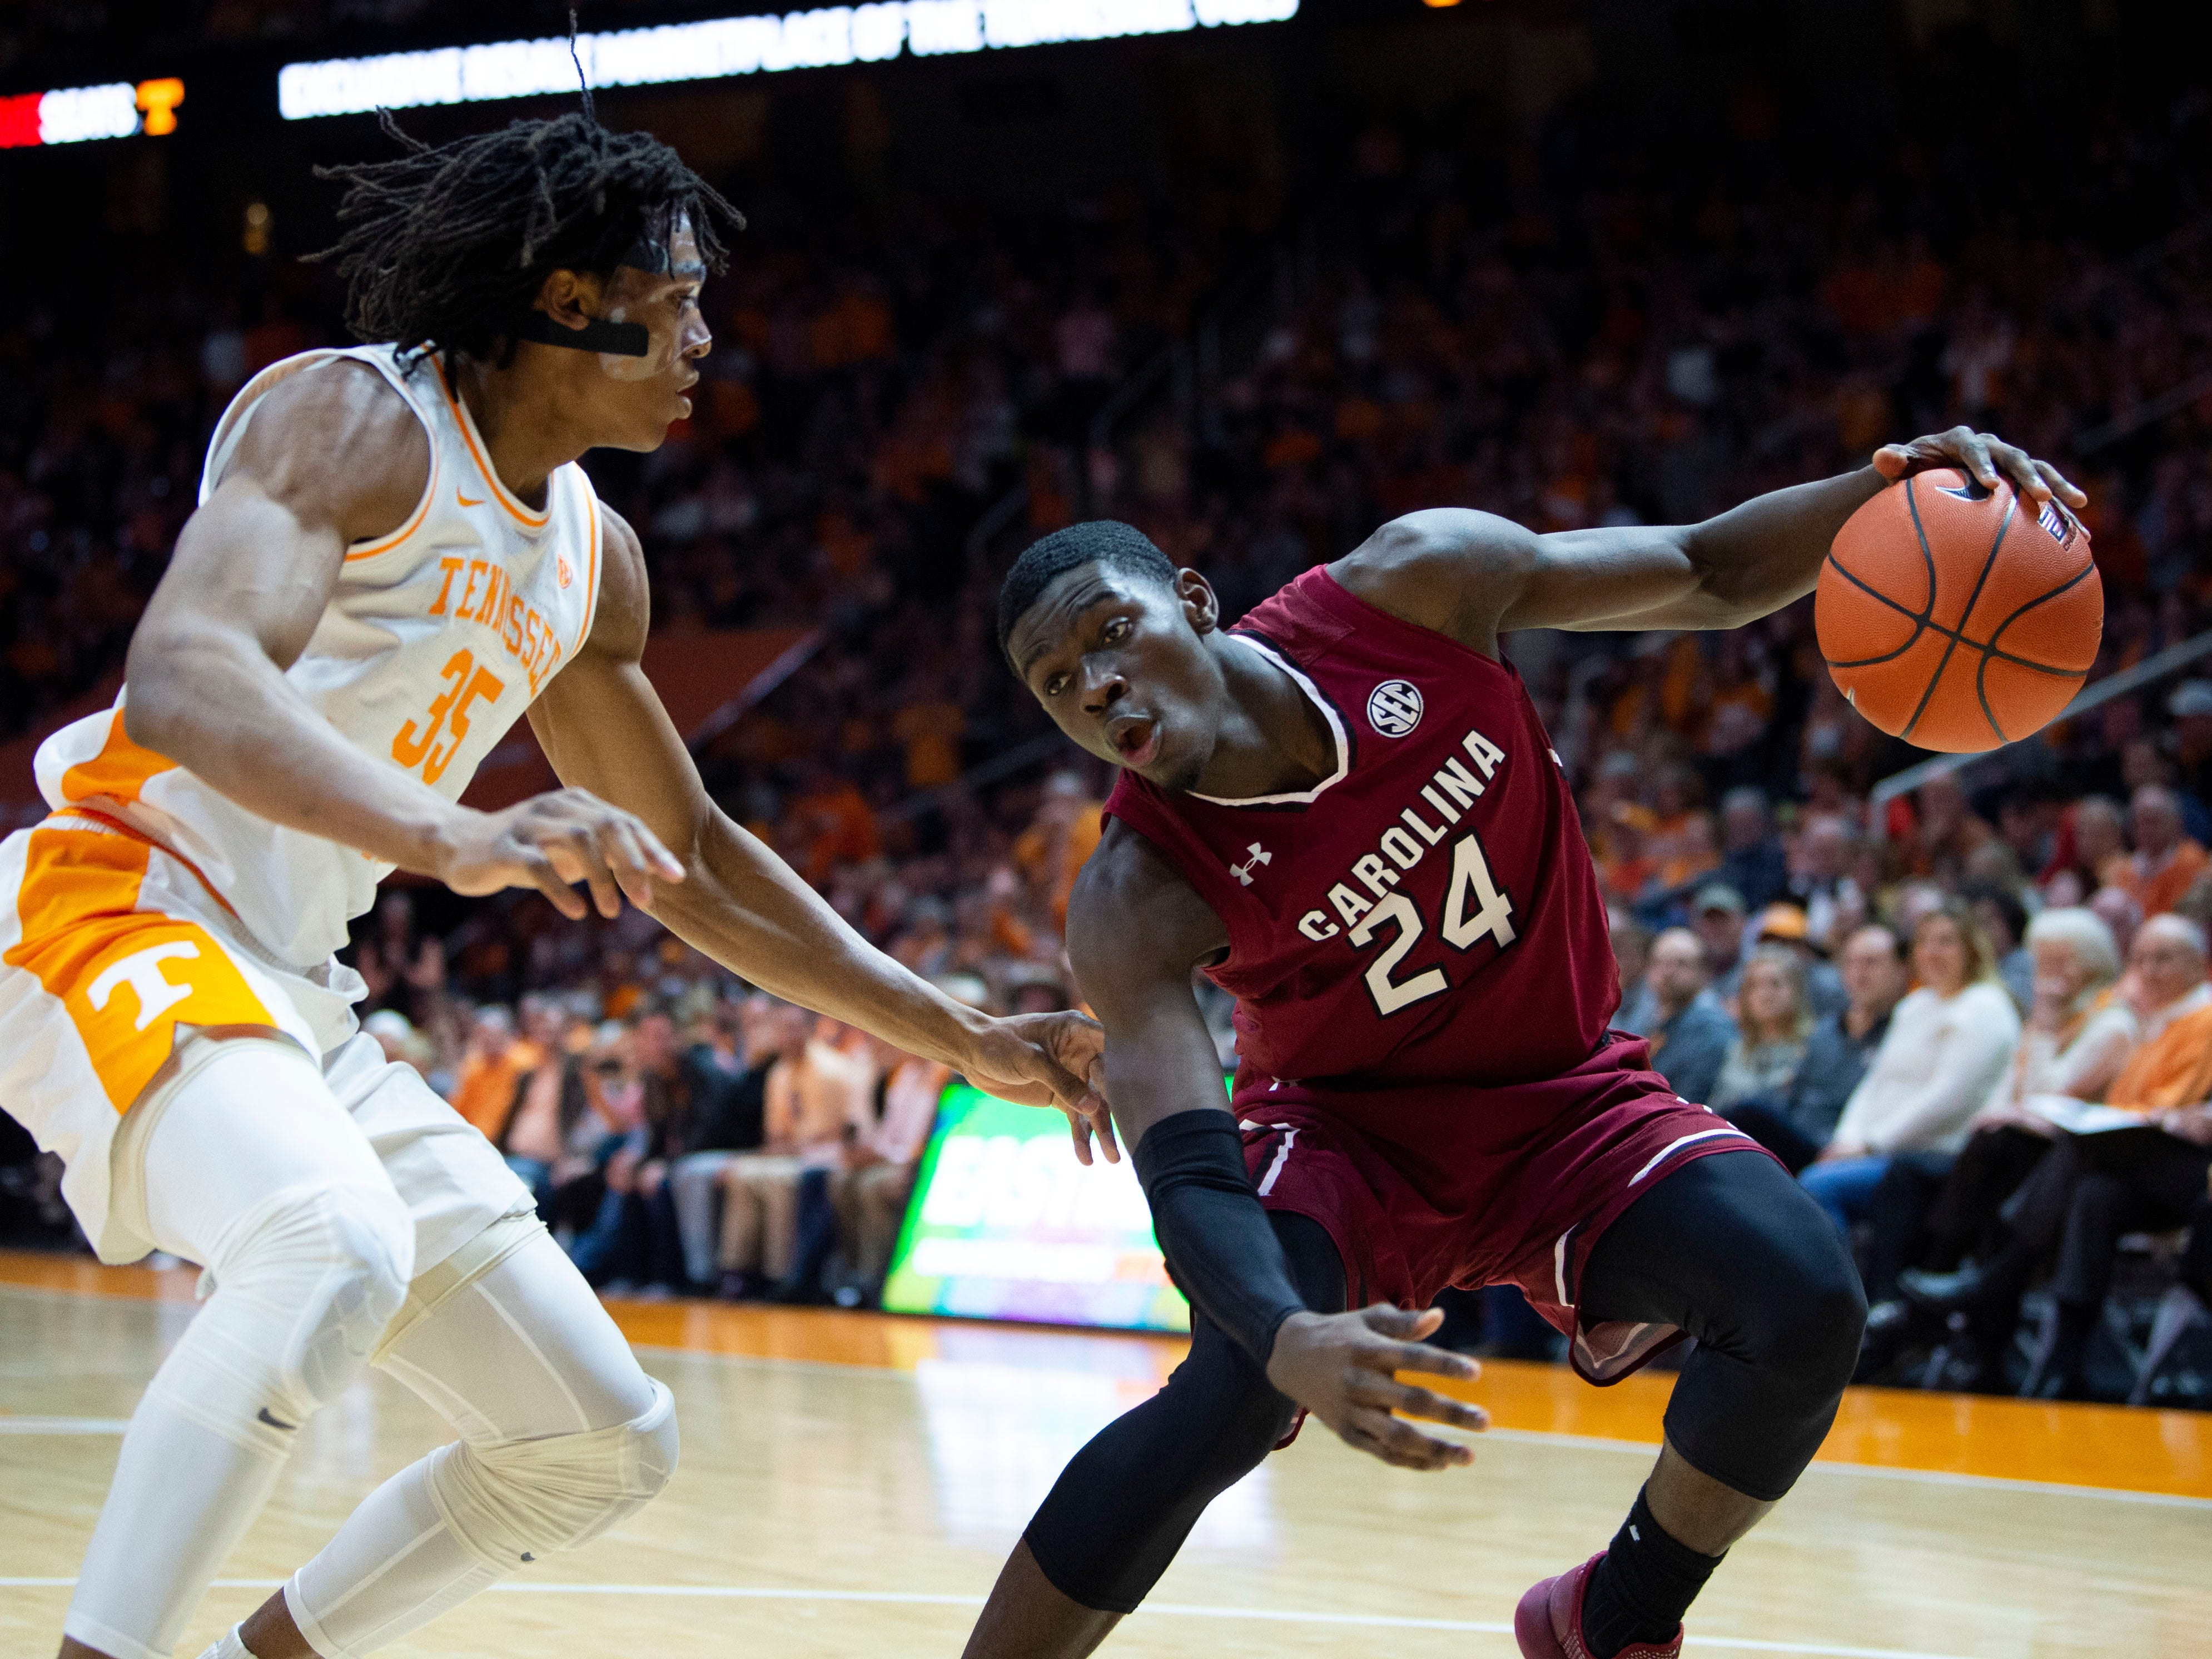 South Carolina forward Keyshawn Bryant (24) is guarded be Tennessee's Yves Pons (35) on Wednesday, February 13, 2019.